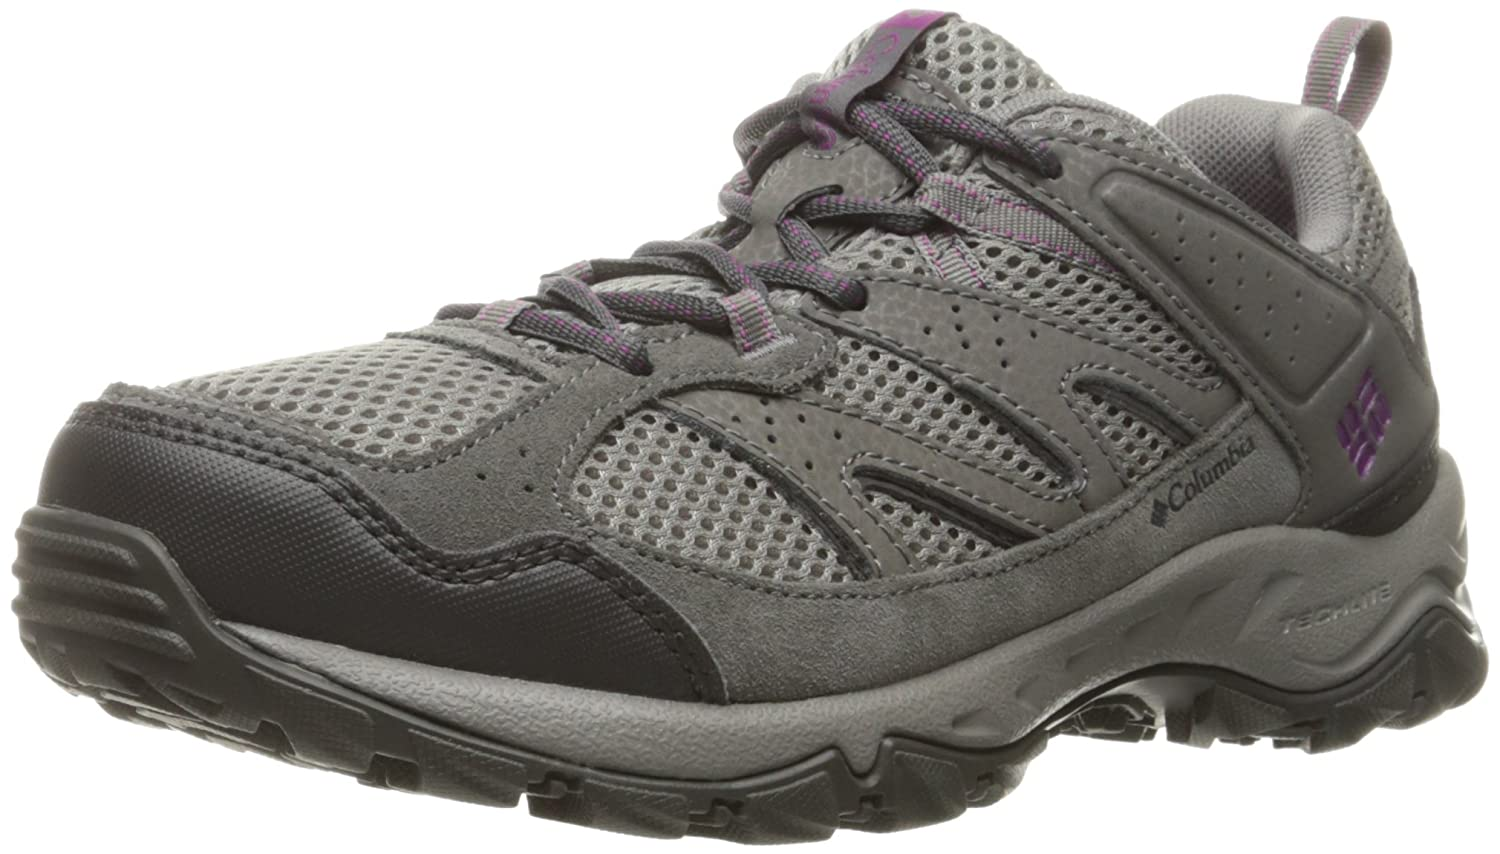 Columbia Women's Plains Ridge WMNS Low Hiking Shoes B0183PFHY2 6 B(M) US|Light Grey/Intense Violet